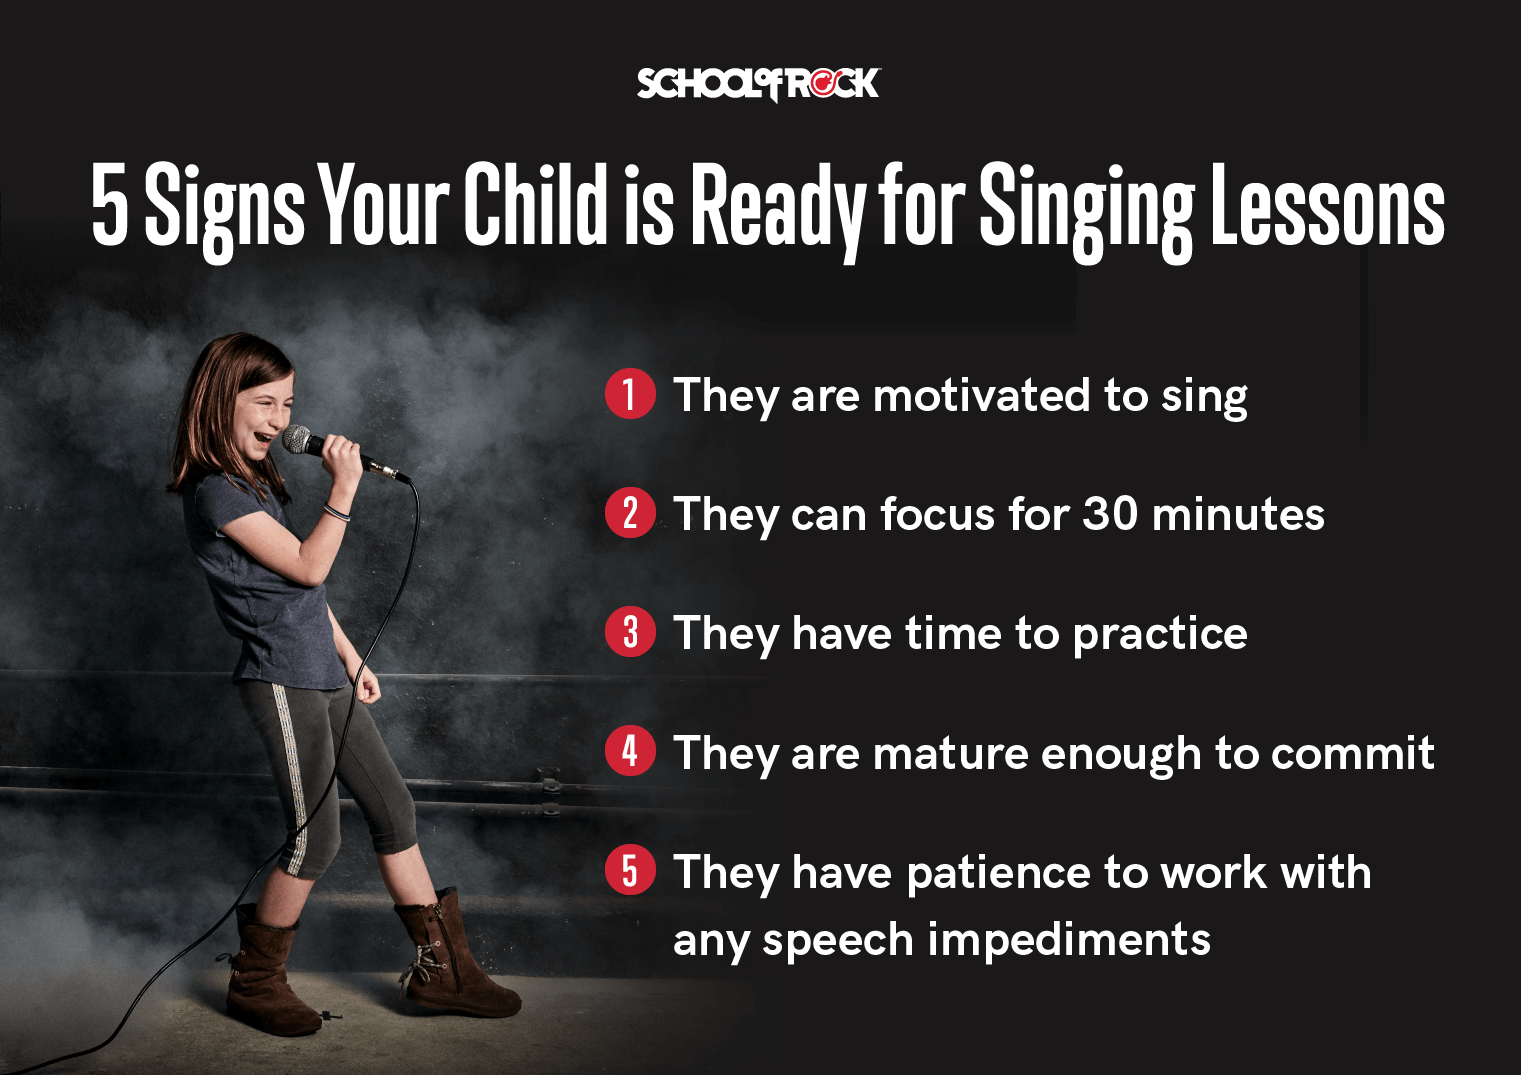 5 signs your child is ready for singing lessons